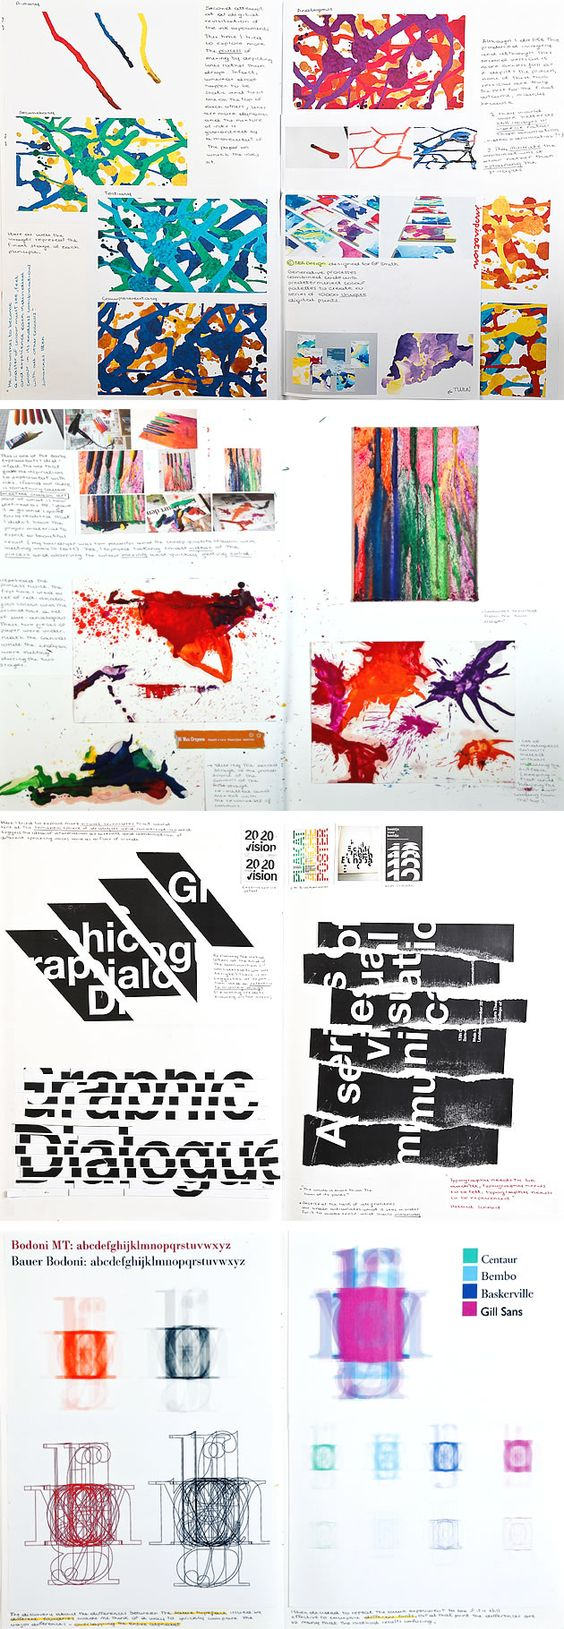 great design sketchbook experimentation, completed by Susanna Foppoli, while studying at the London College of Communication